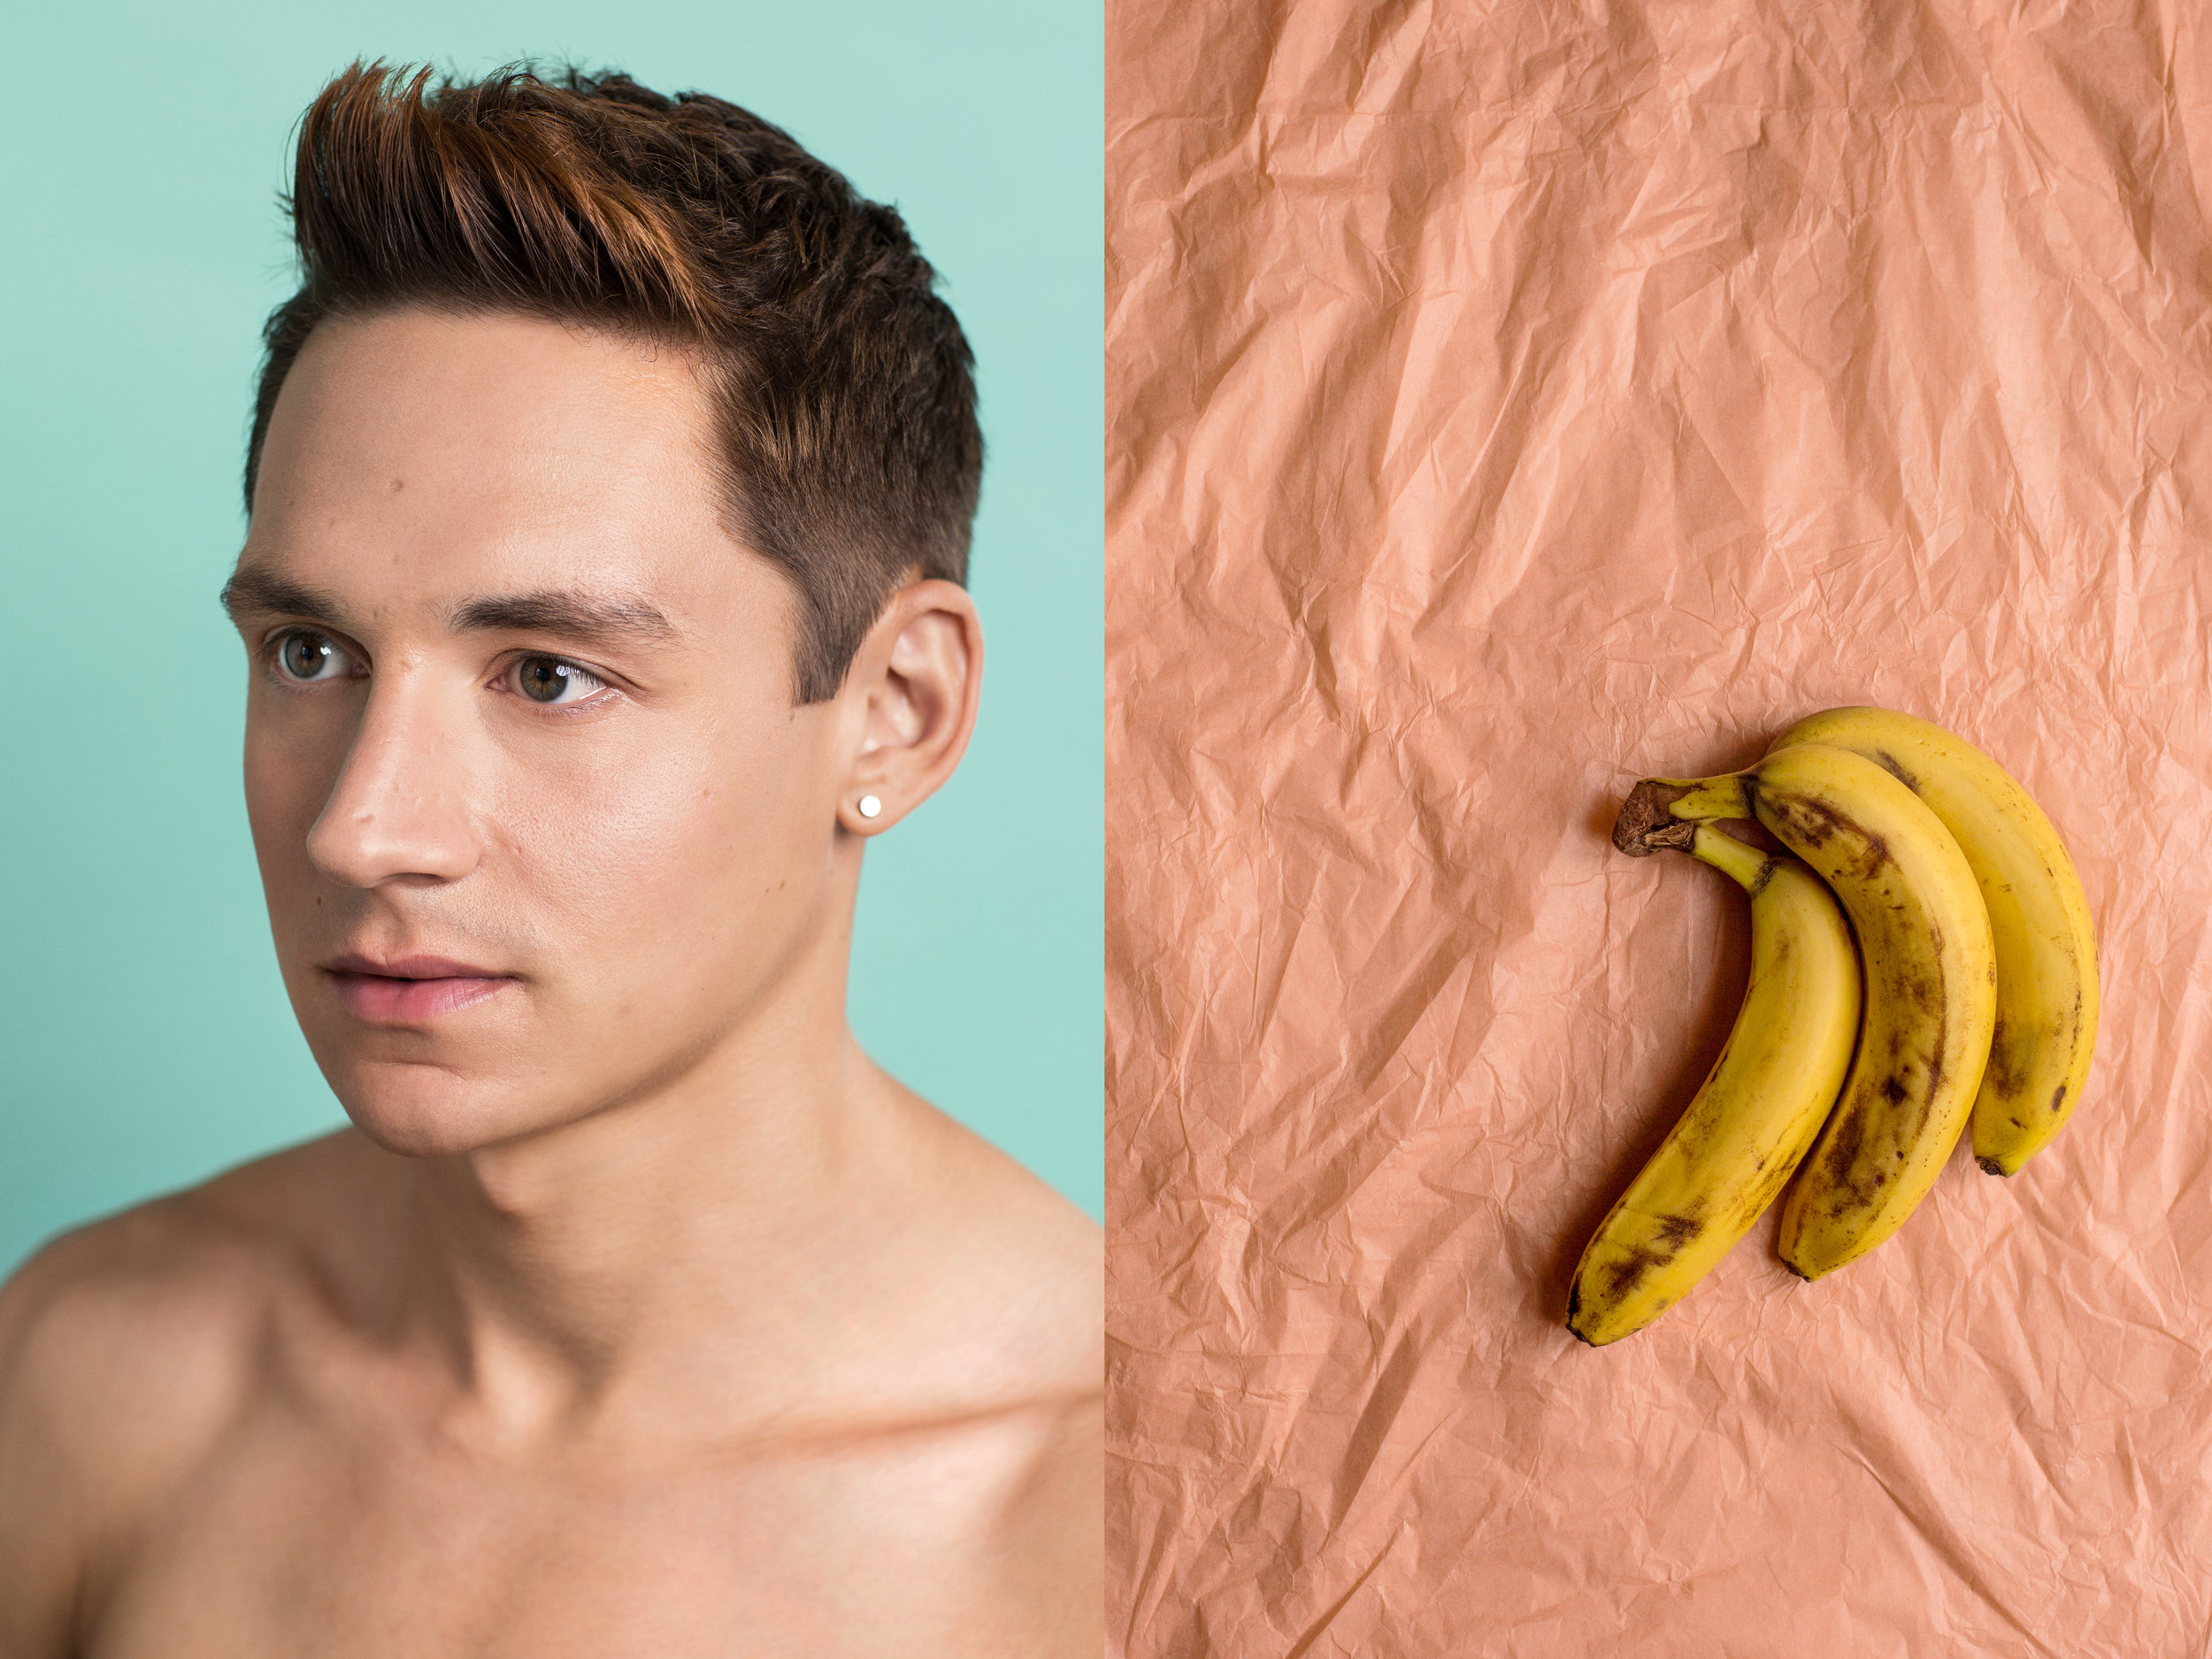 """James, 28, Bananas   """"My problems have been trivialised a lot of the time by medical professionals who think that I'm bananas for making myself sick. I developed OCD and depression around the age of 14. I had missed nearly a year of school as a result of symptoms around cleanliness. My anxieties switched from obsessions and compulsions around appearance to weight and shape and I began to control what I was eating in order to influence this. Professional help seemed to focus on superficial symptoms of my condition rather than the underlying emotional distress and anxiety. I now see more and more images of the perfect male body in the media, which from my perspective has put pressure on me to live up to this ideal. It is something I associate with achievement, likability and success."""""""